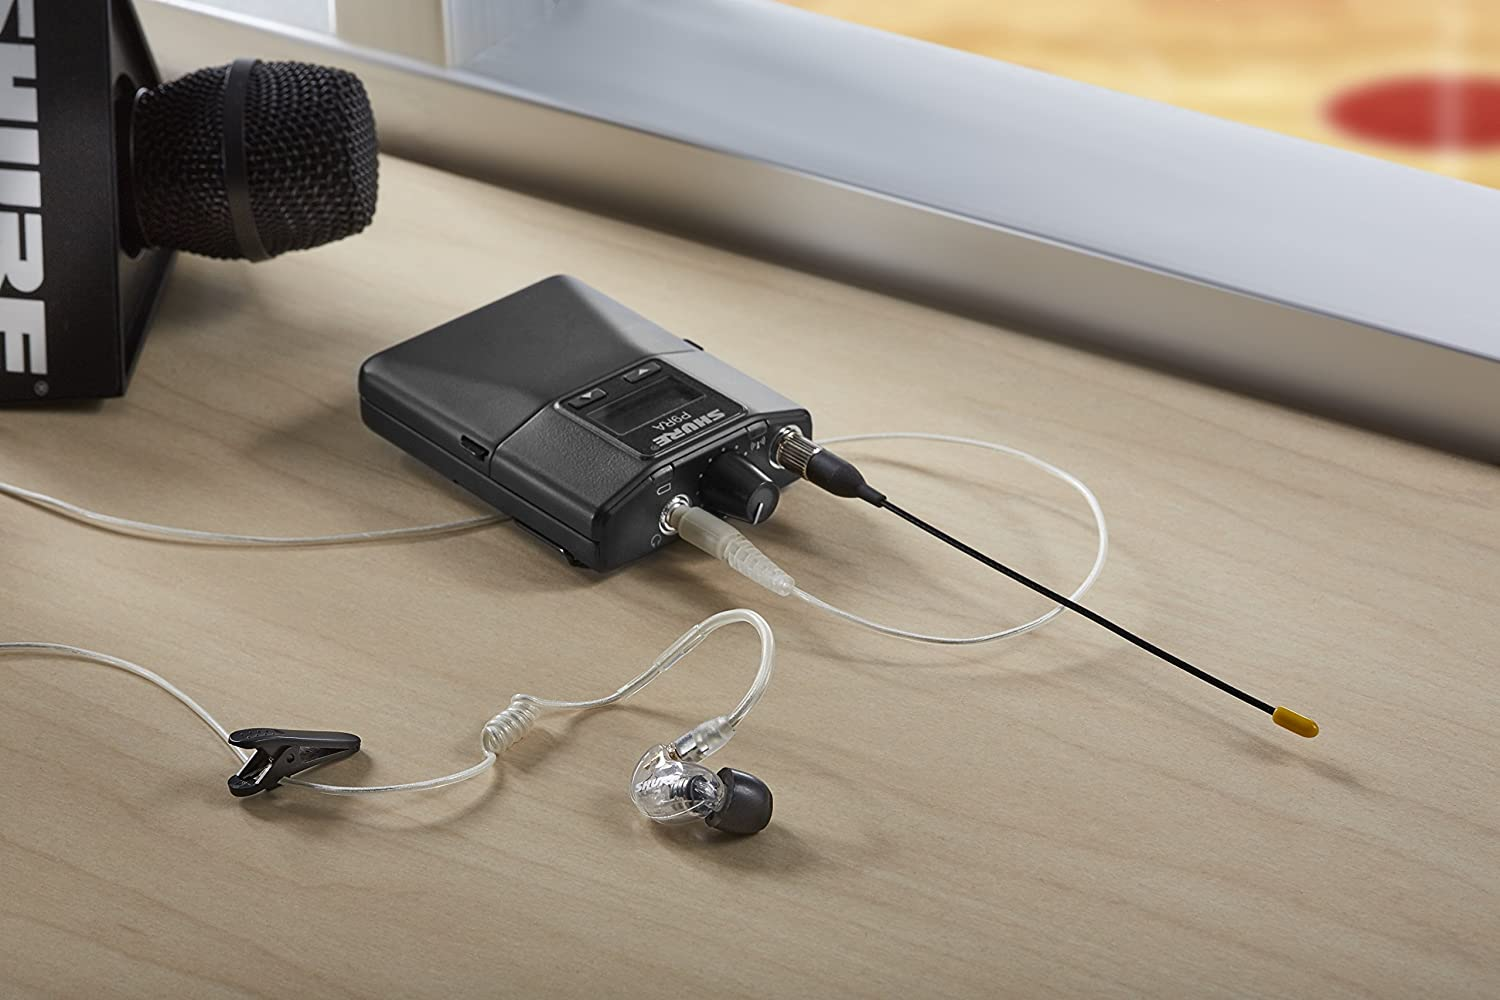 Shure EAC-IFB Coiled IFB Earphone Cable with Clip for Intercom Applications